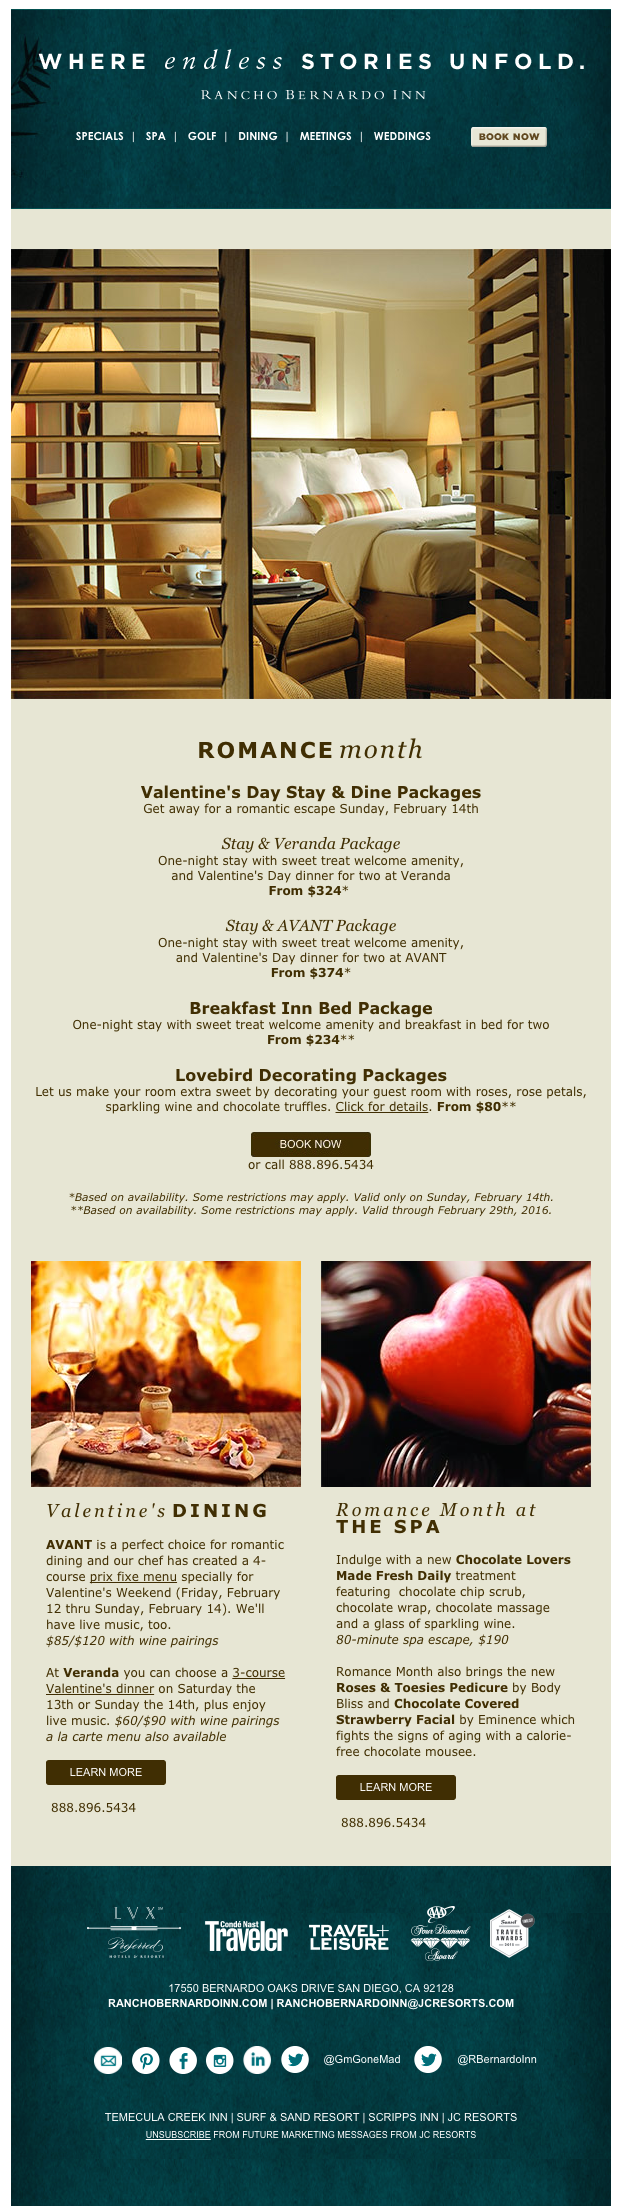 Alluring and romantic Valentine's Day email, without hearts! From Rancho Bernardo Inn, near San Diego